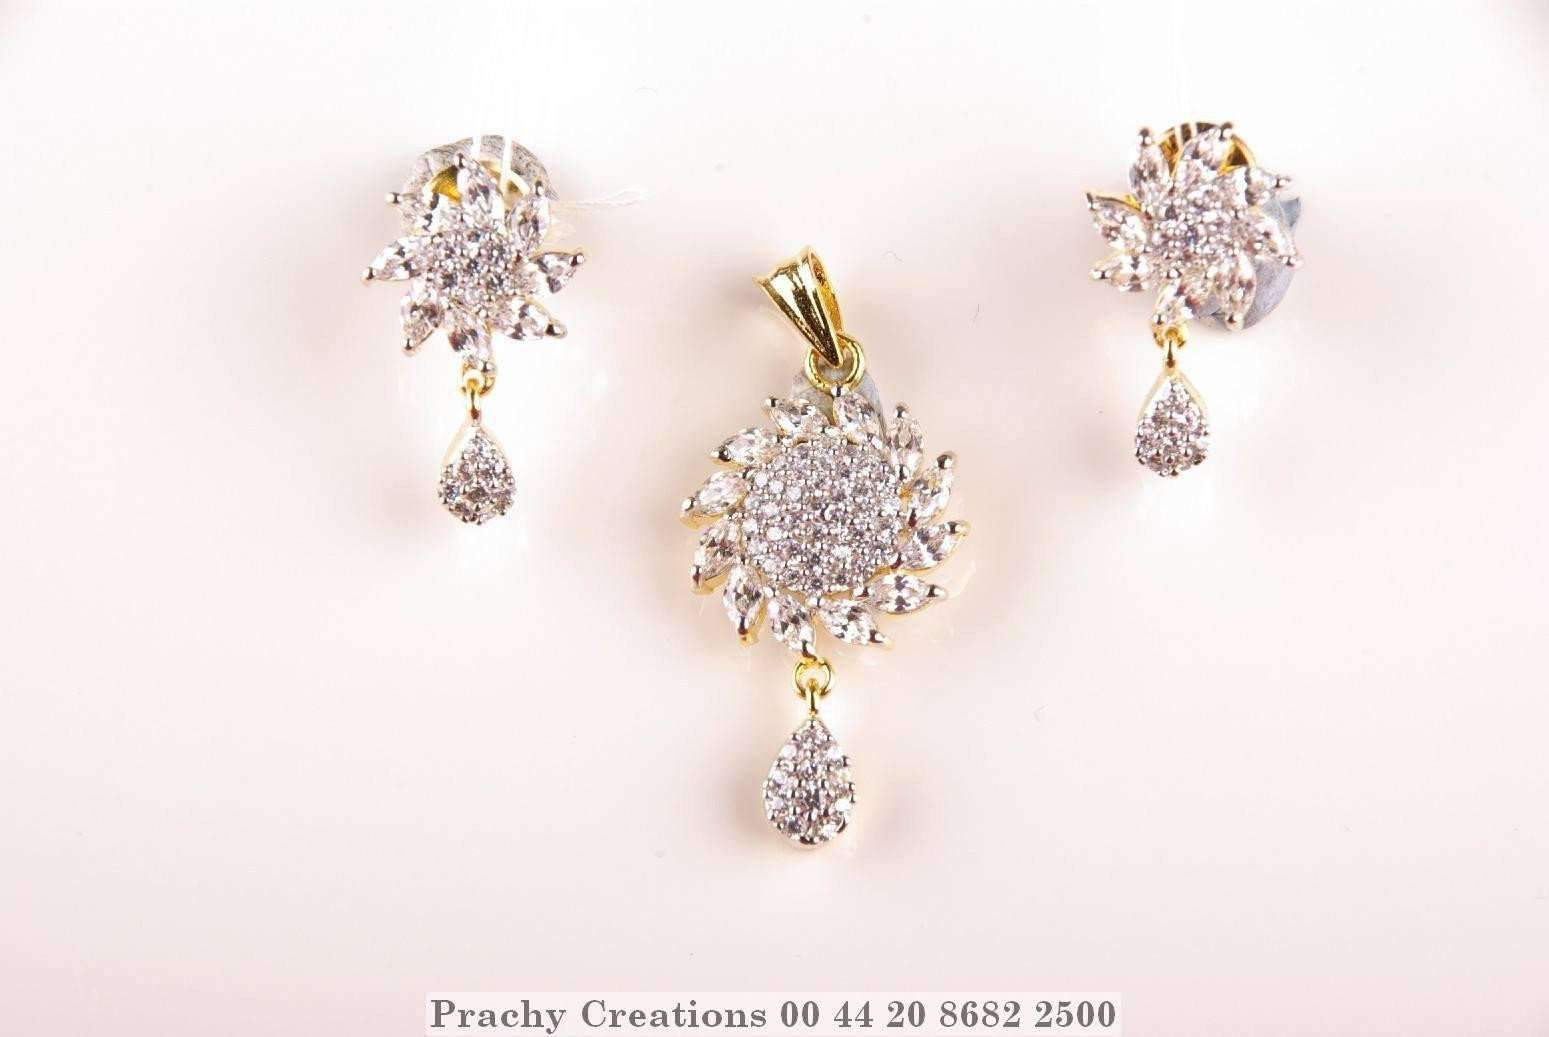 Prachy Creations : Floral pendant set with earrings 1073-92, Gold